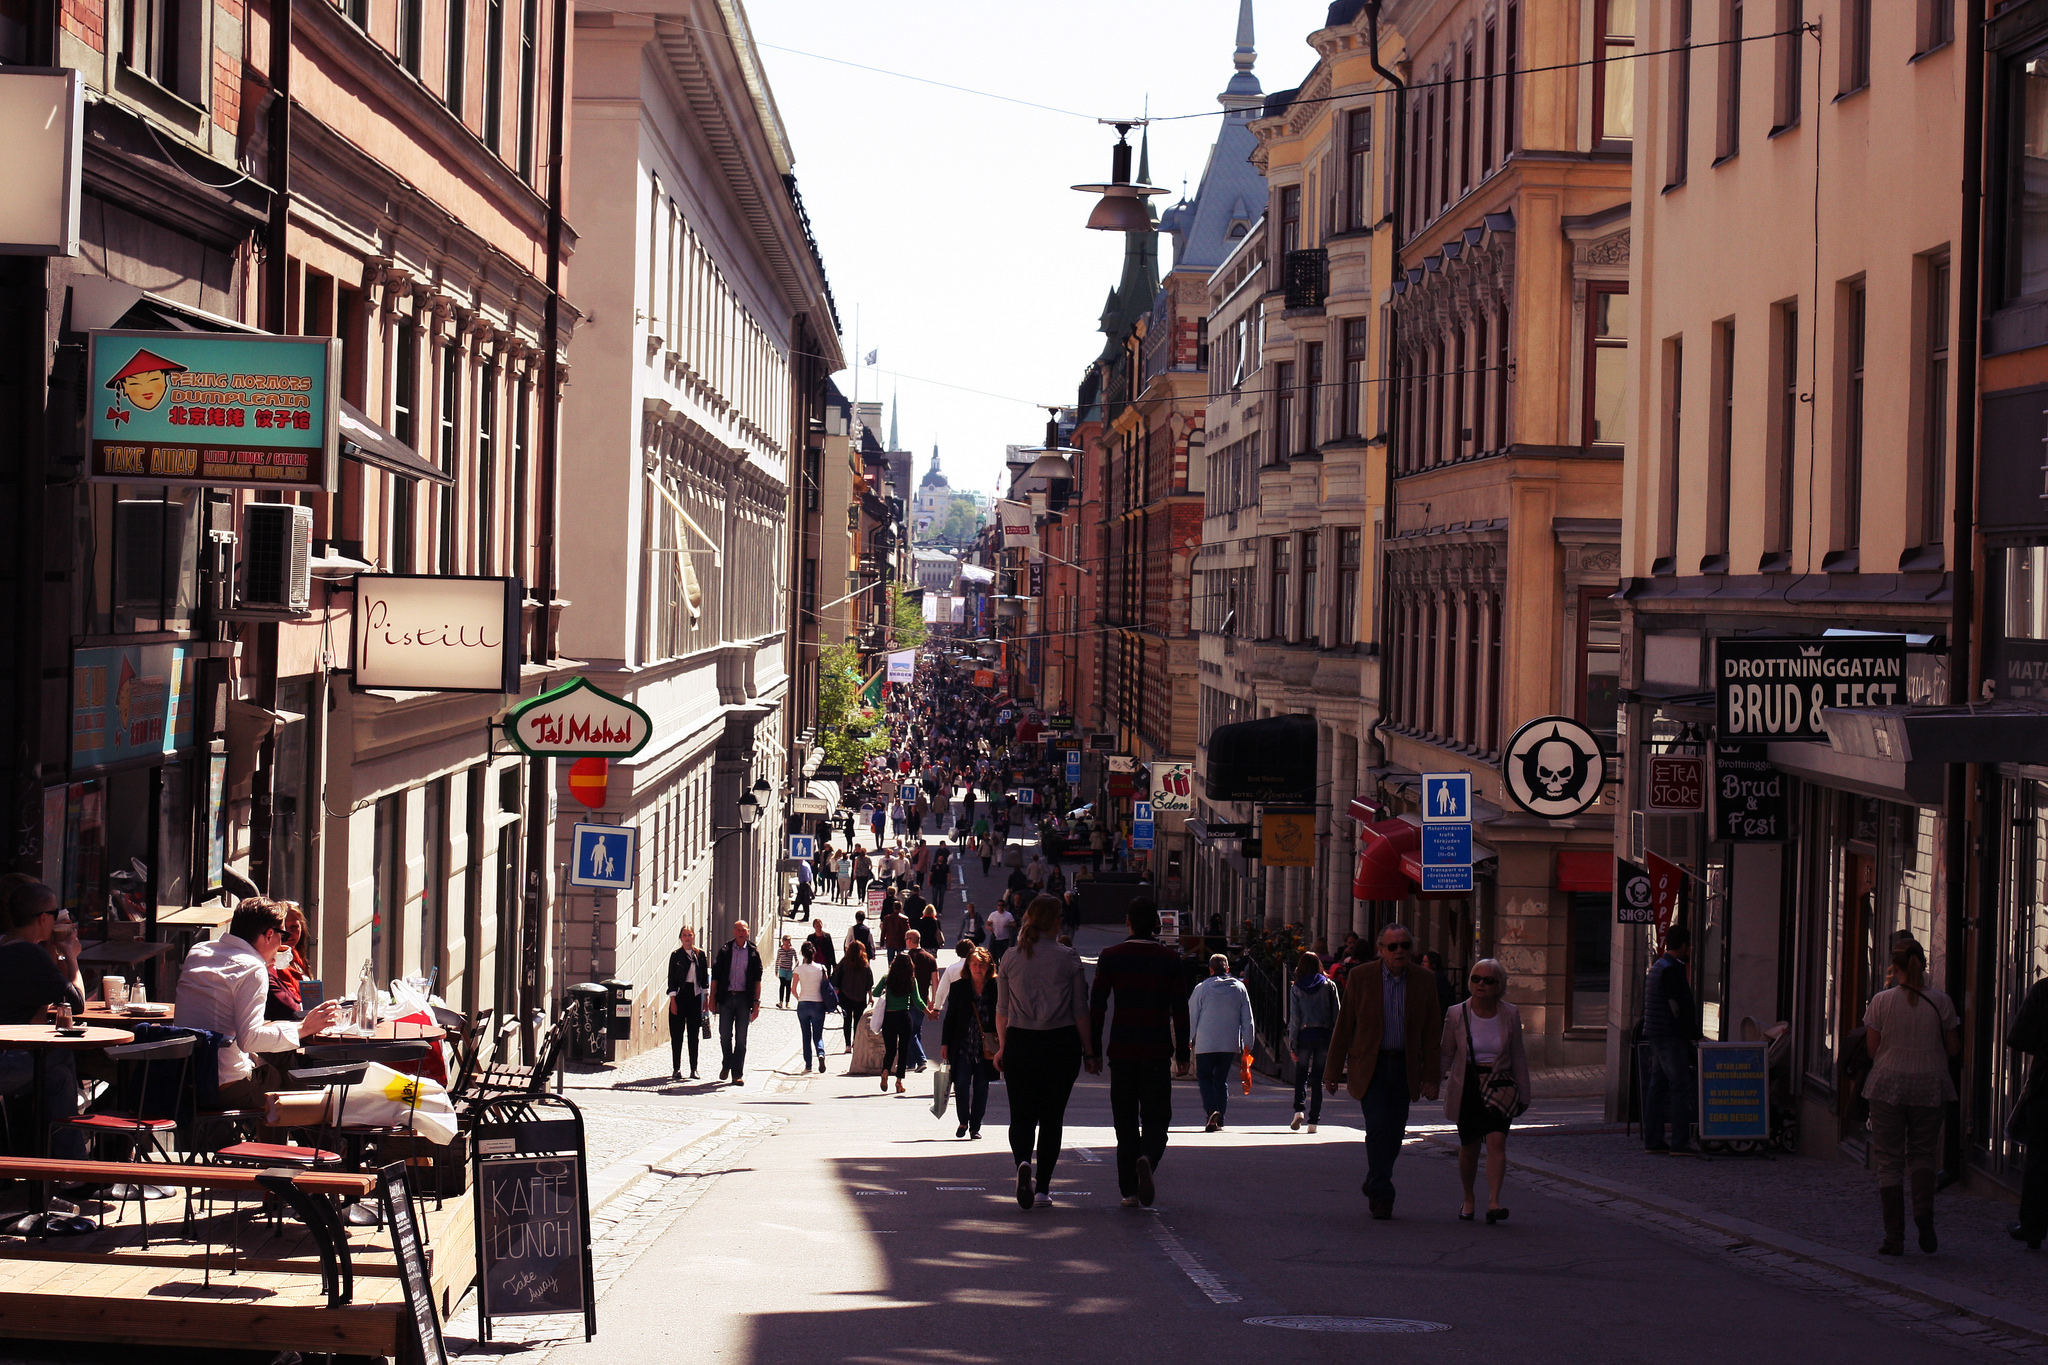 The Coolest Streets in Stockholm